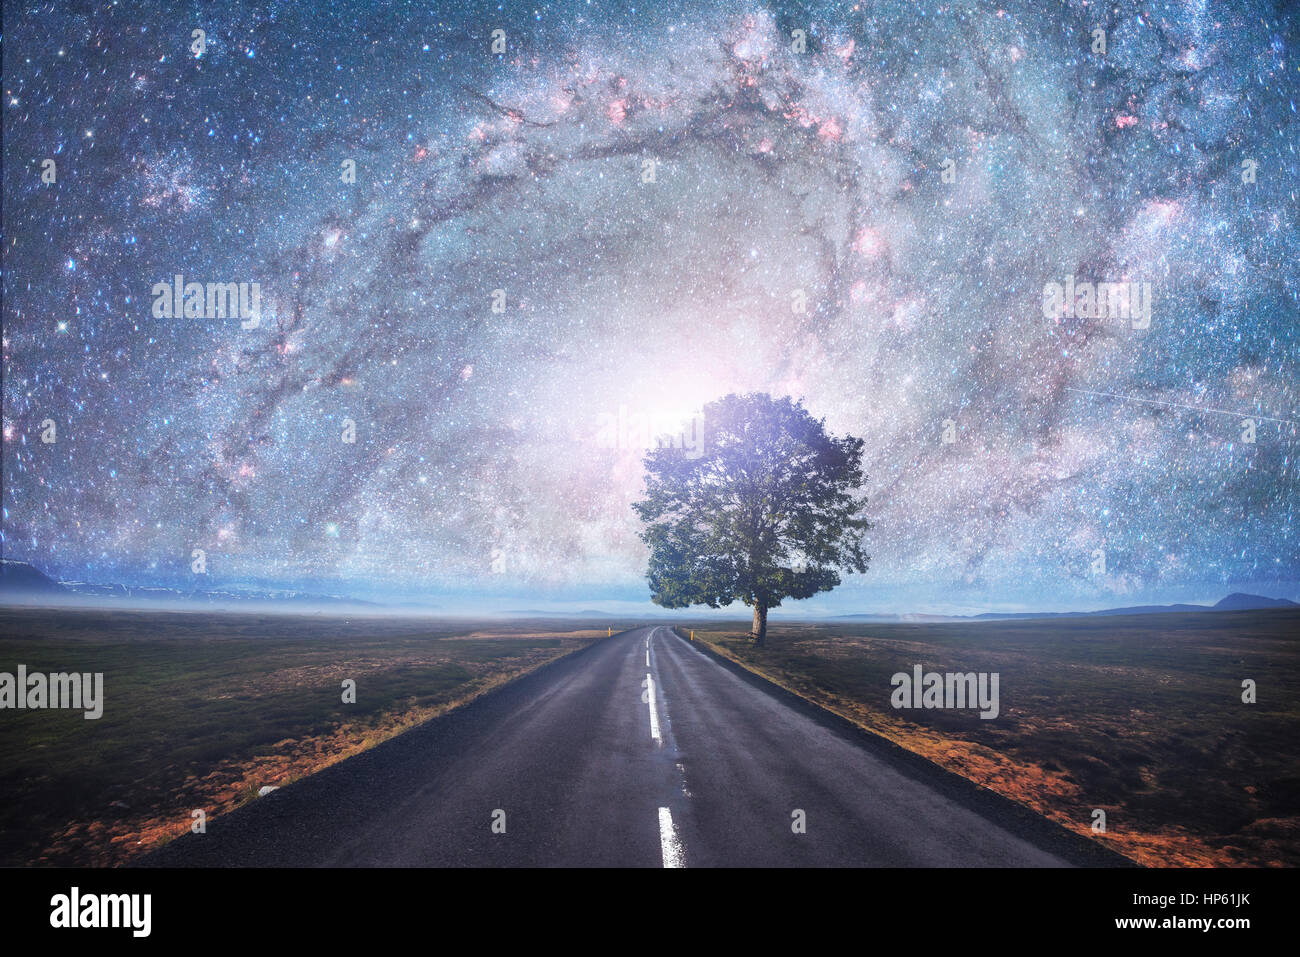 Asphalt road and lonely tree under a starry night sky Stock Photo